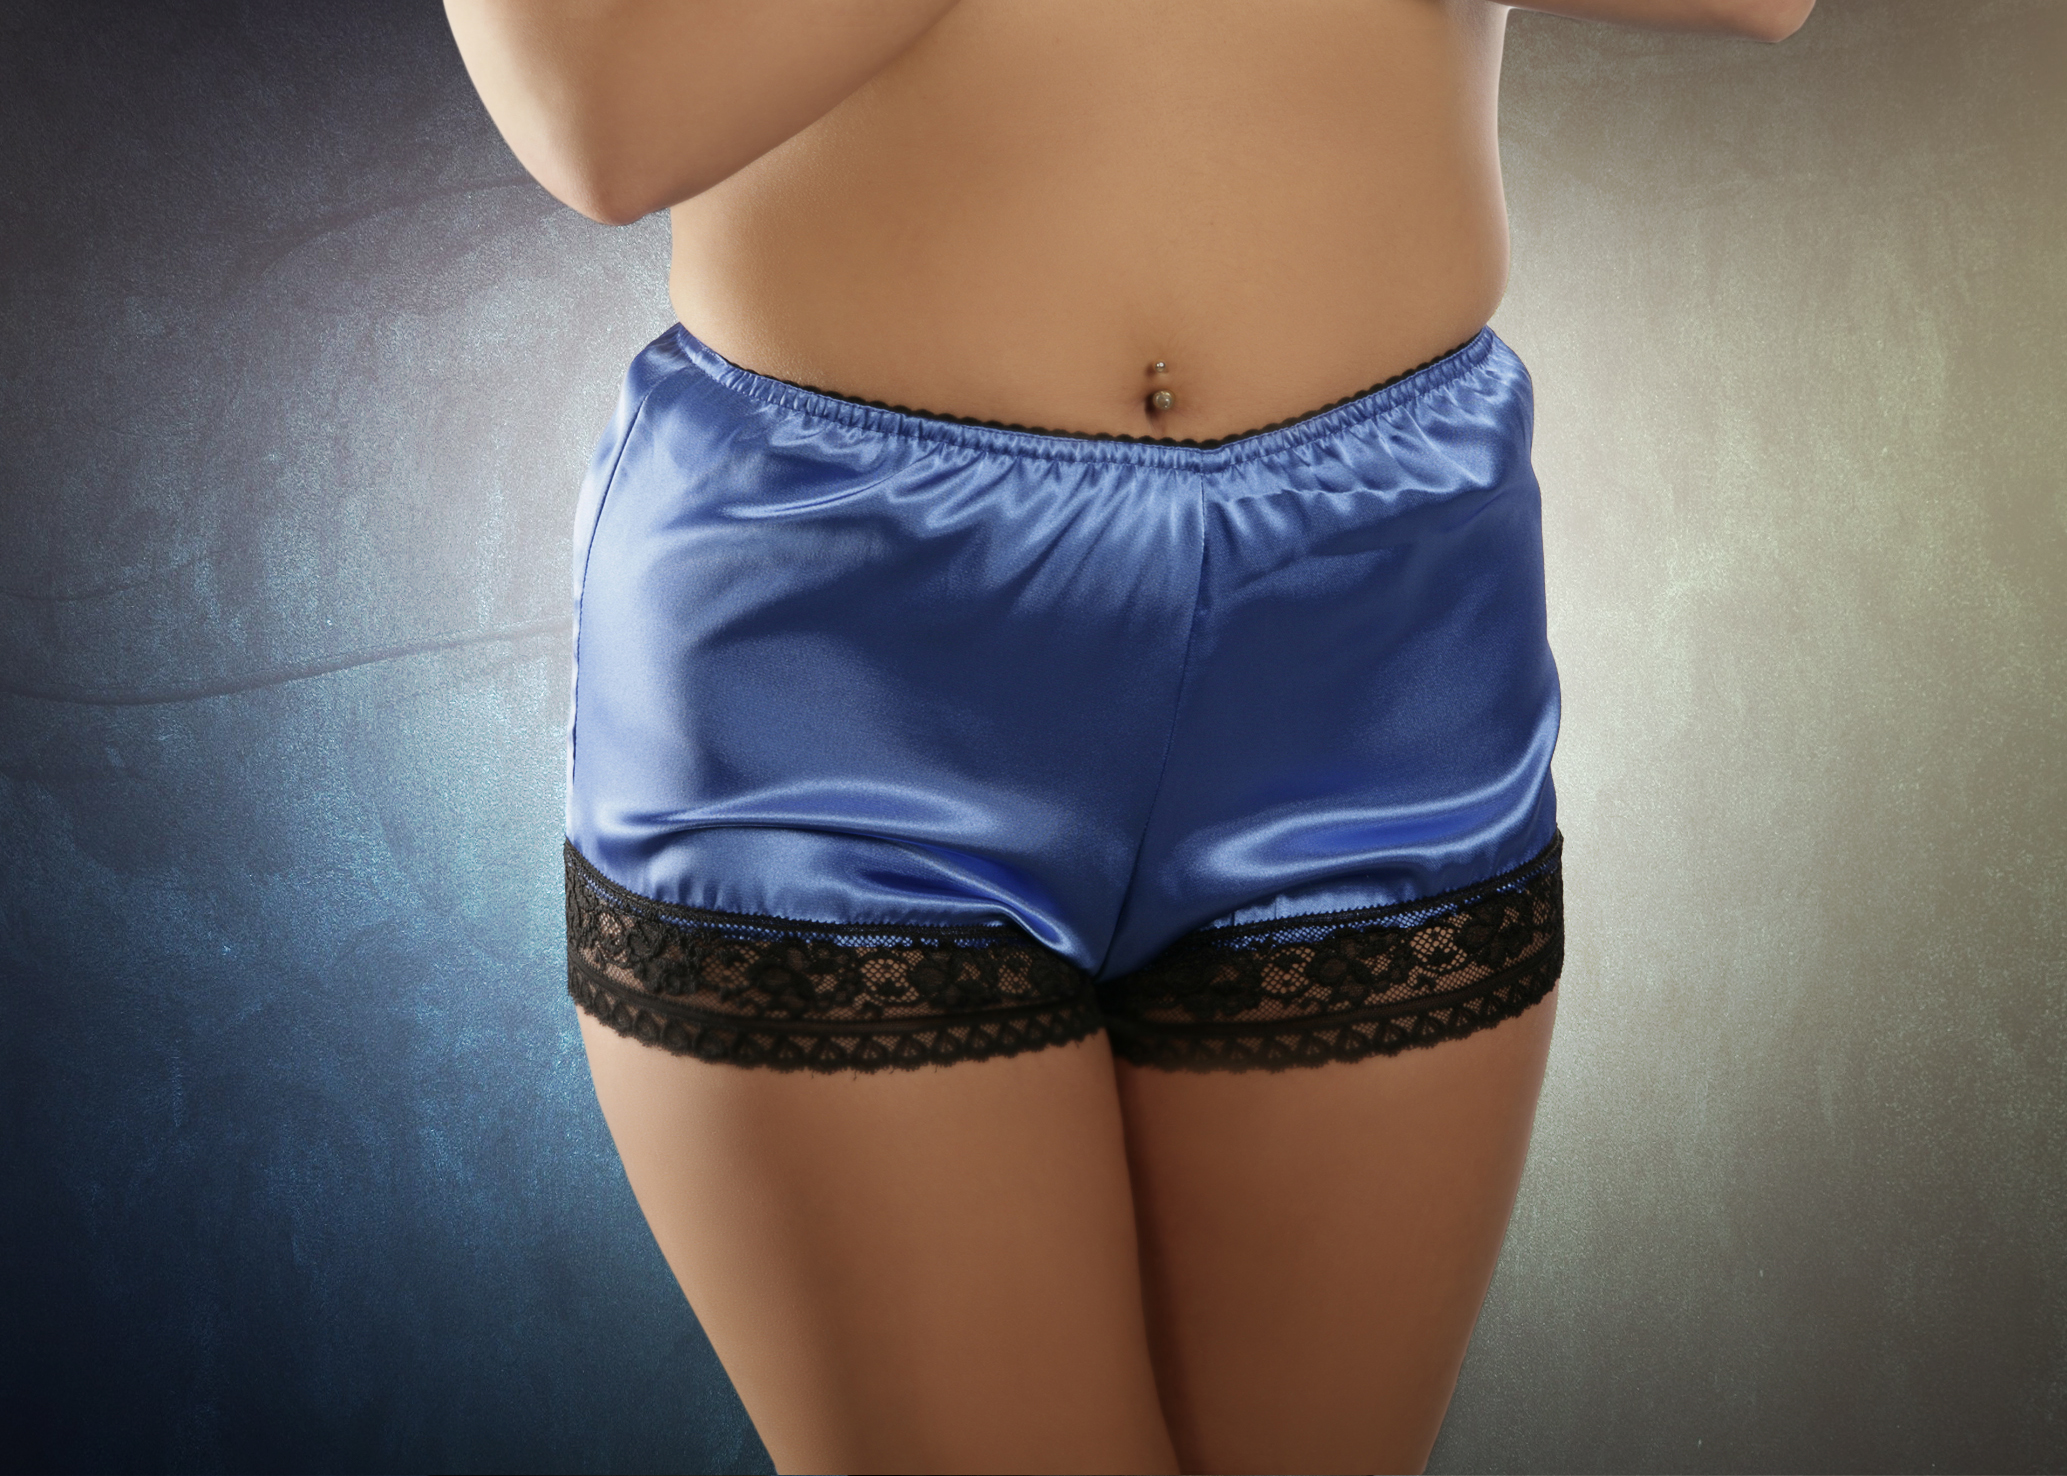 Blue French-style knickers